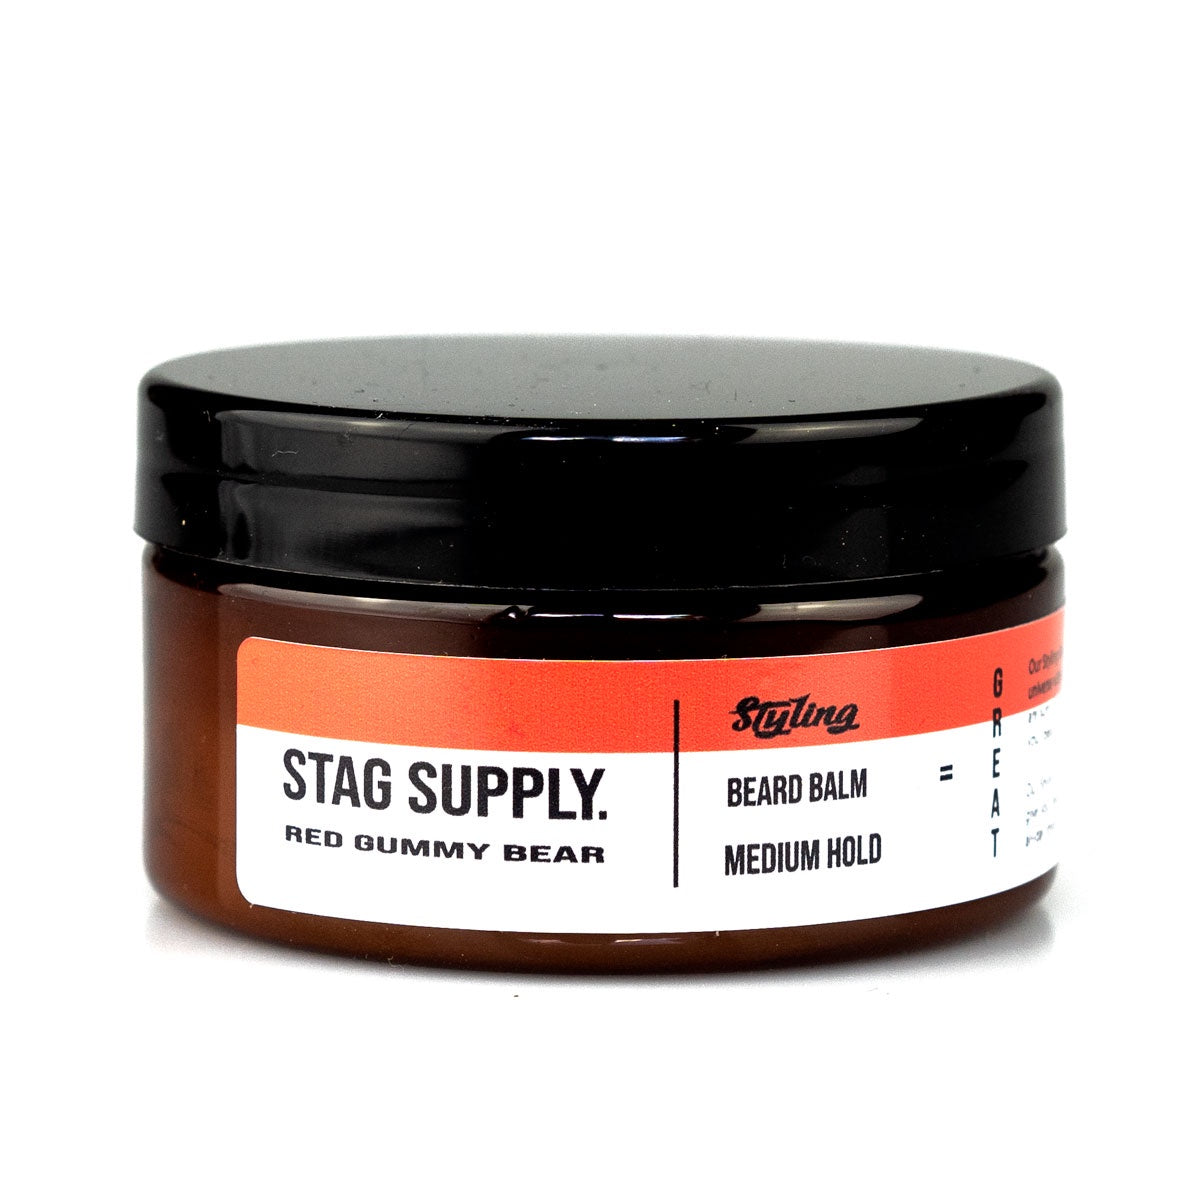 Stag Supply Red Gummy Bear Beard Balm 100ml